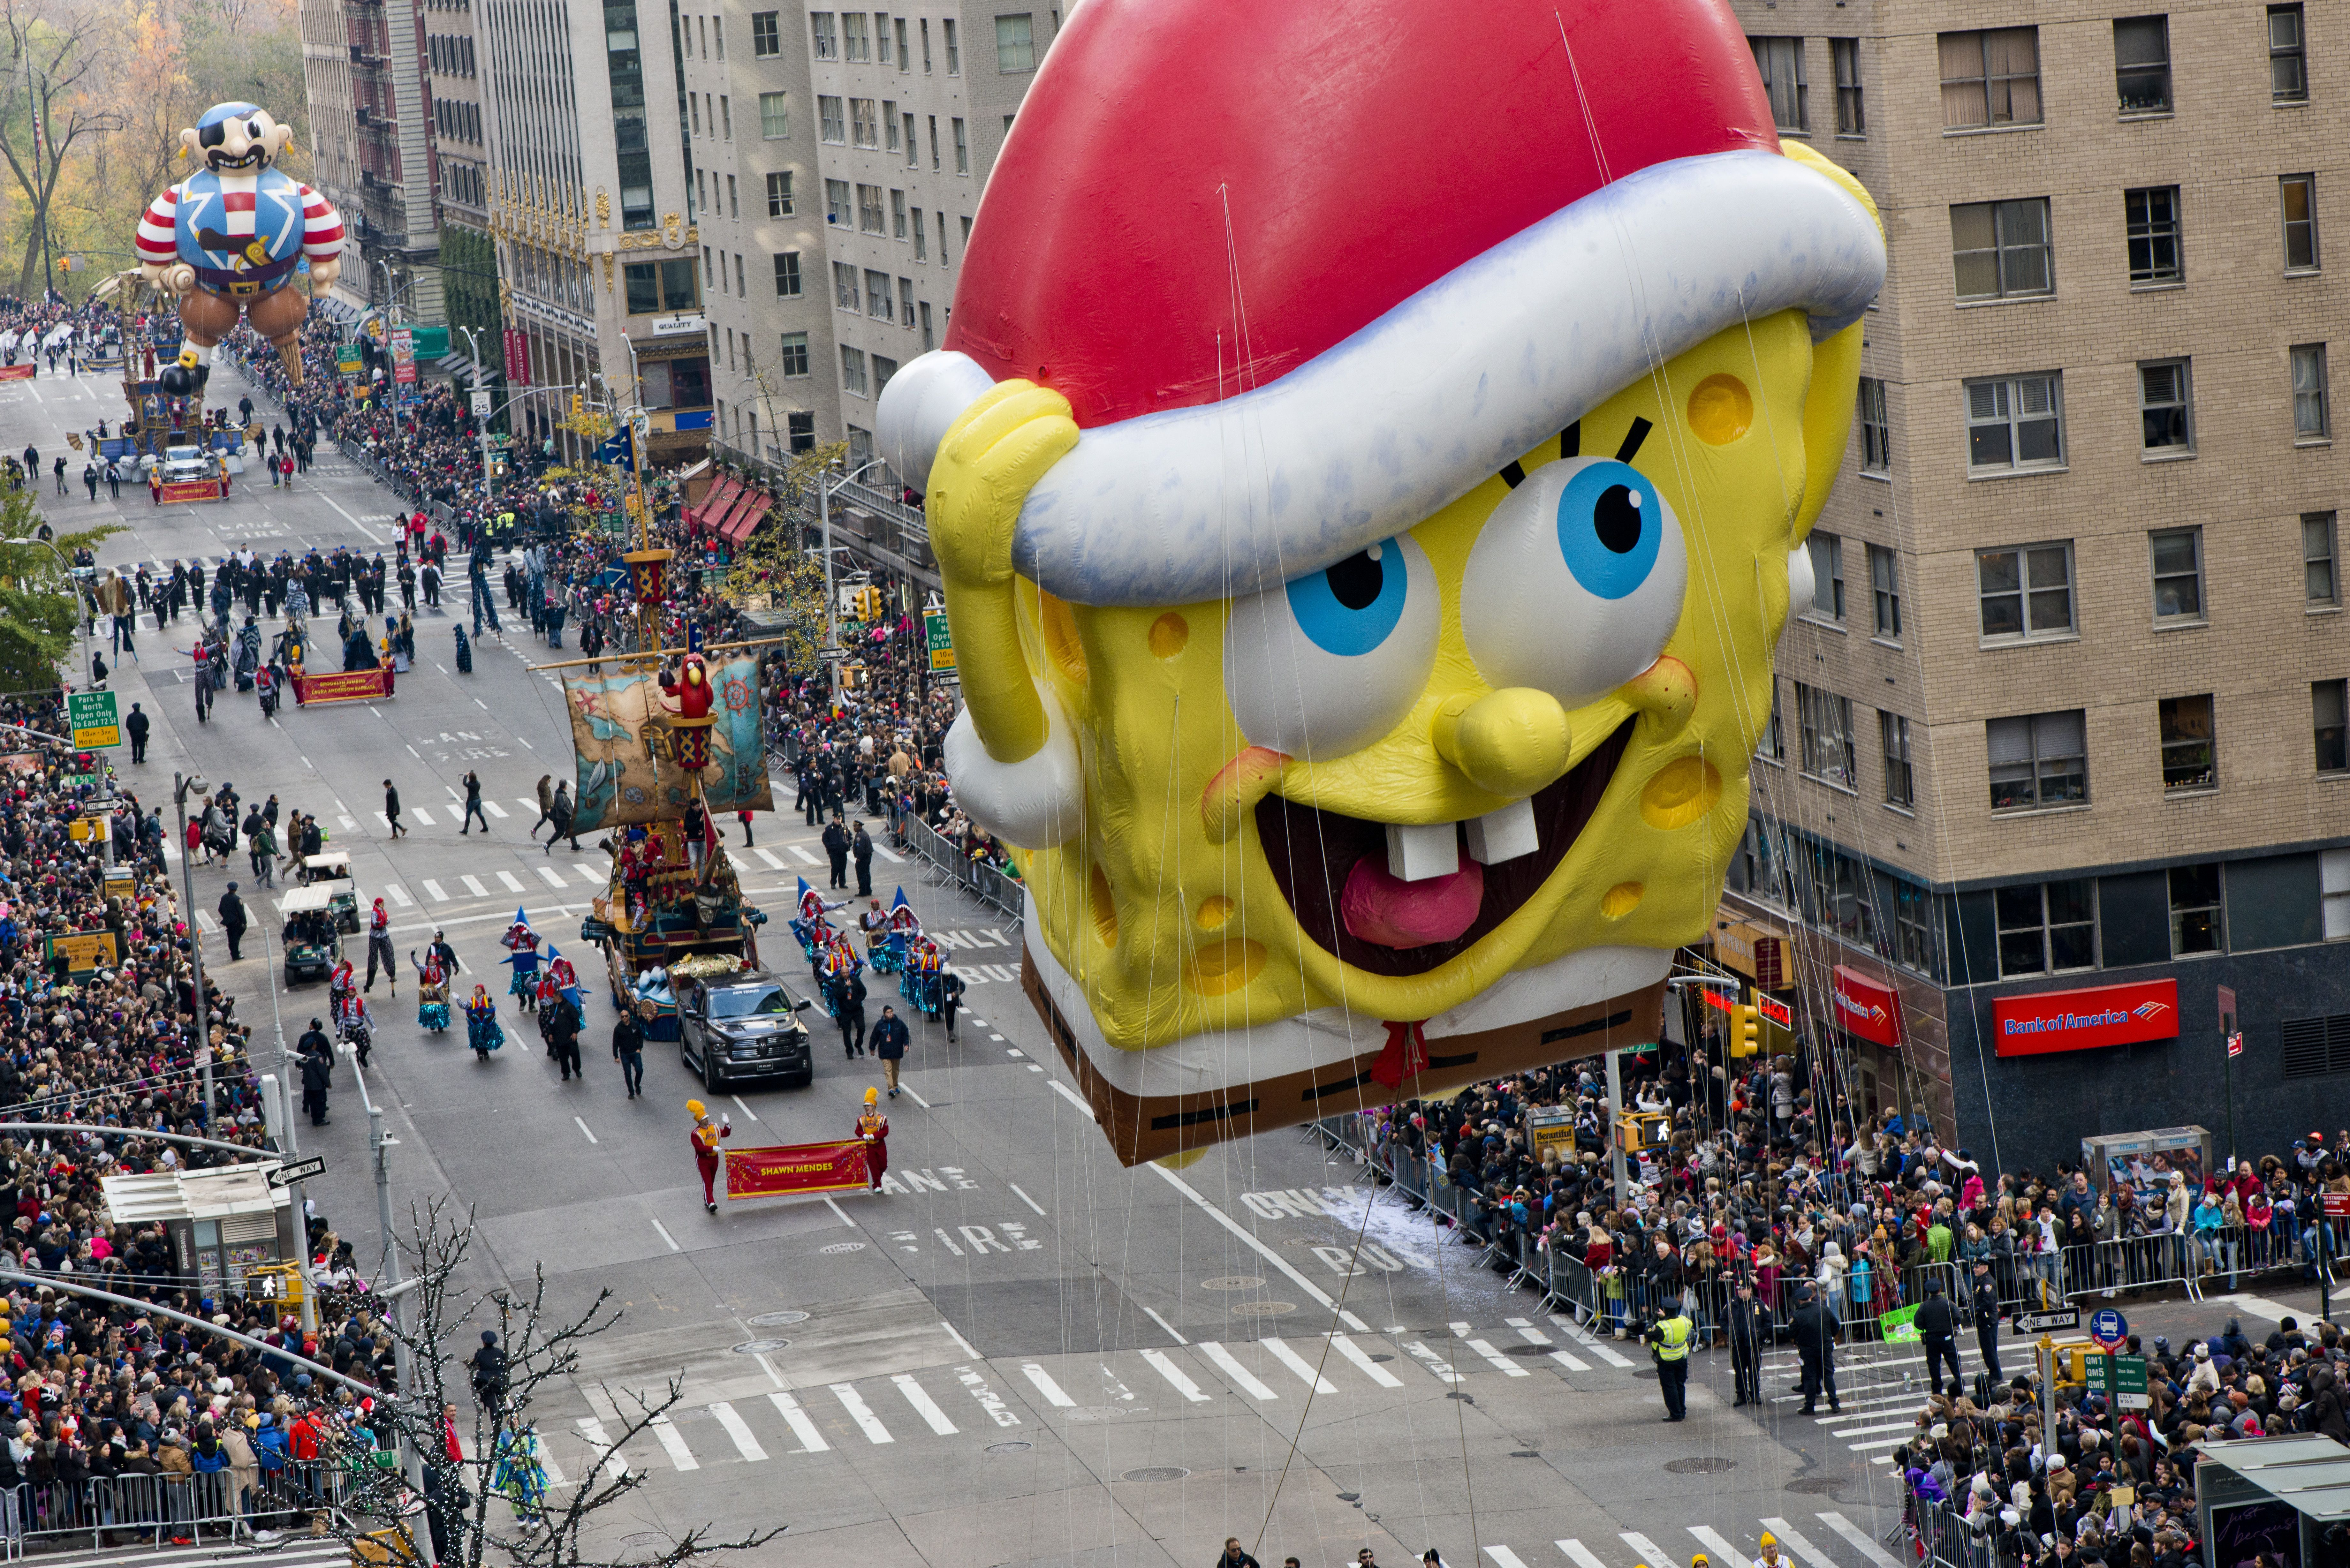 Your Guide To The 2019 Macy S Thanksgiving Day Parade With Kids In 2020 Macy S Thanksgiving Day Parade Macy S Thanksgiving Day Parade Parade Route